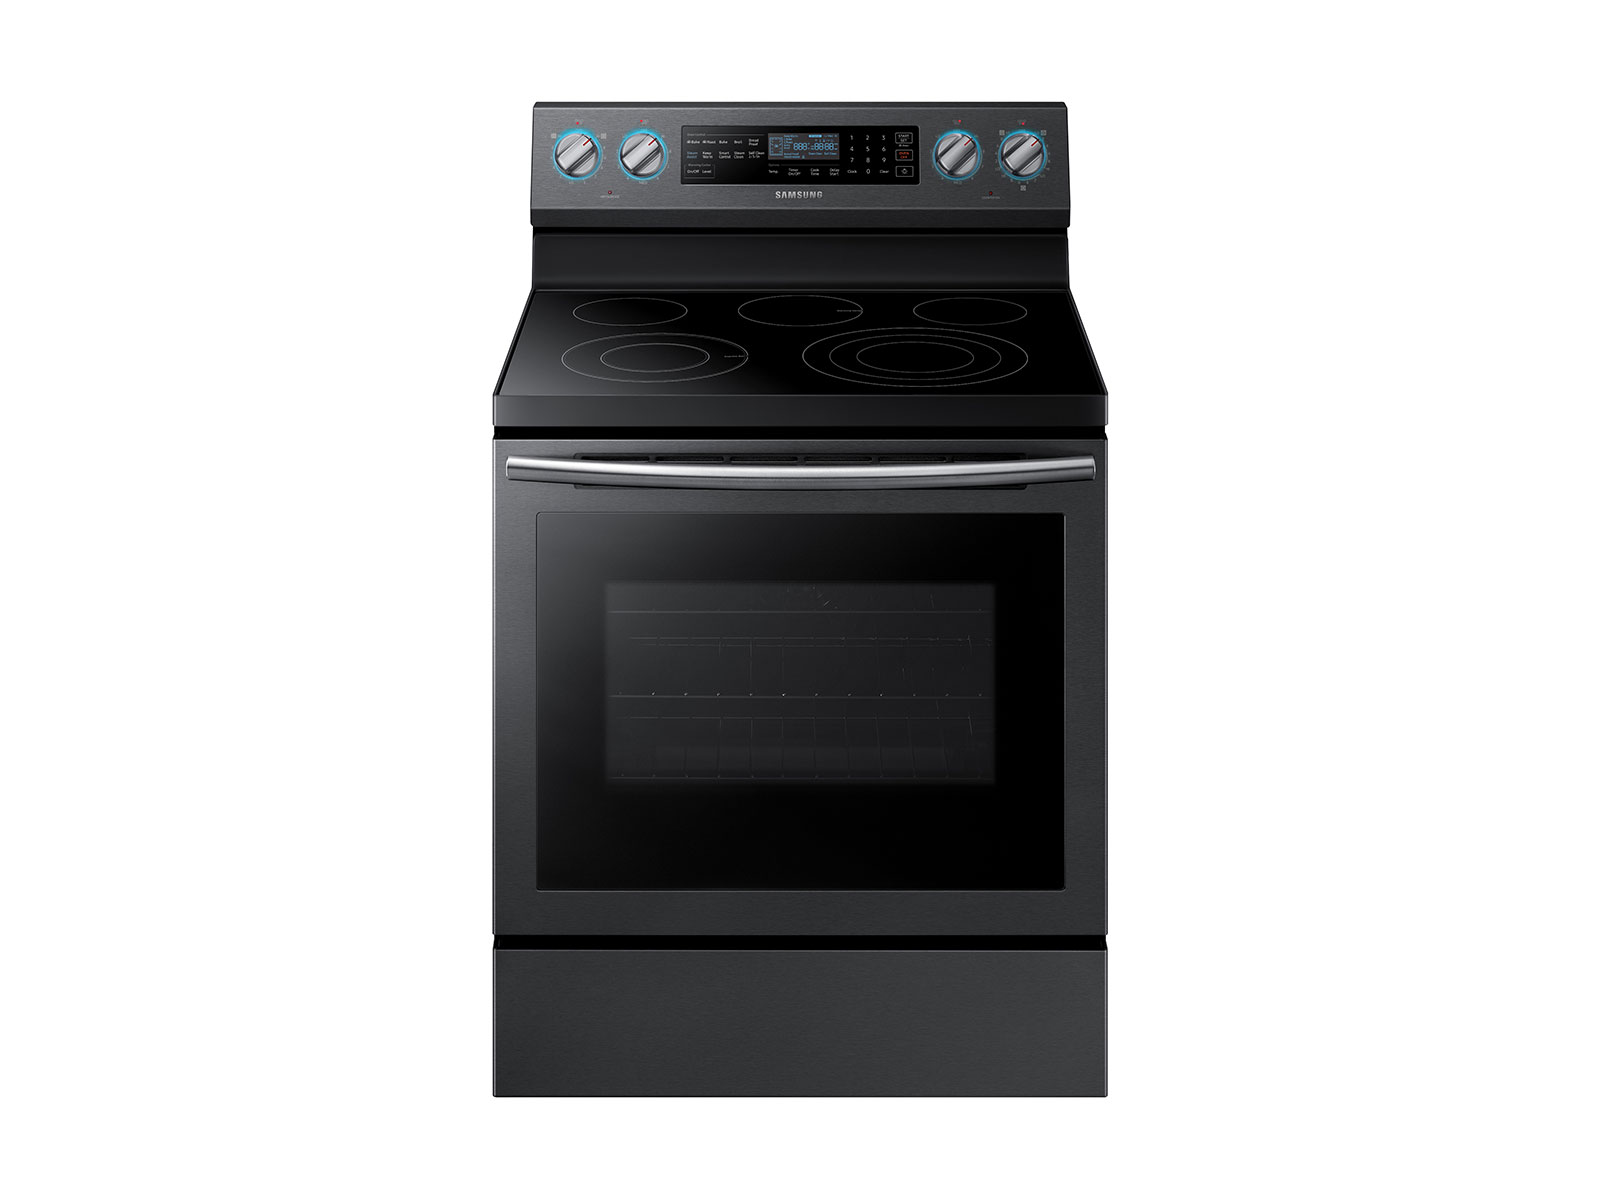 Samsung 5.9 cu. ft. Freestanding Electric Range with True Convection & Steam Assist in Black Stainless Steel, Fingerprint Resistant Black Stainless